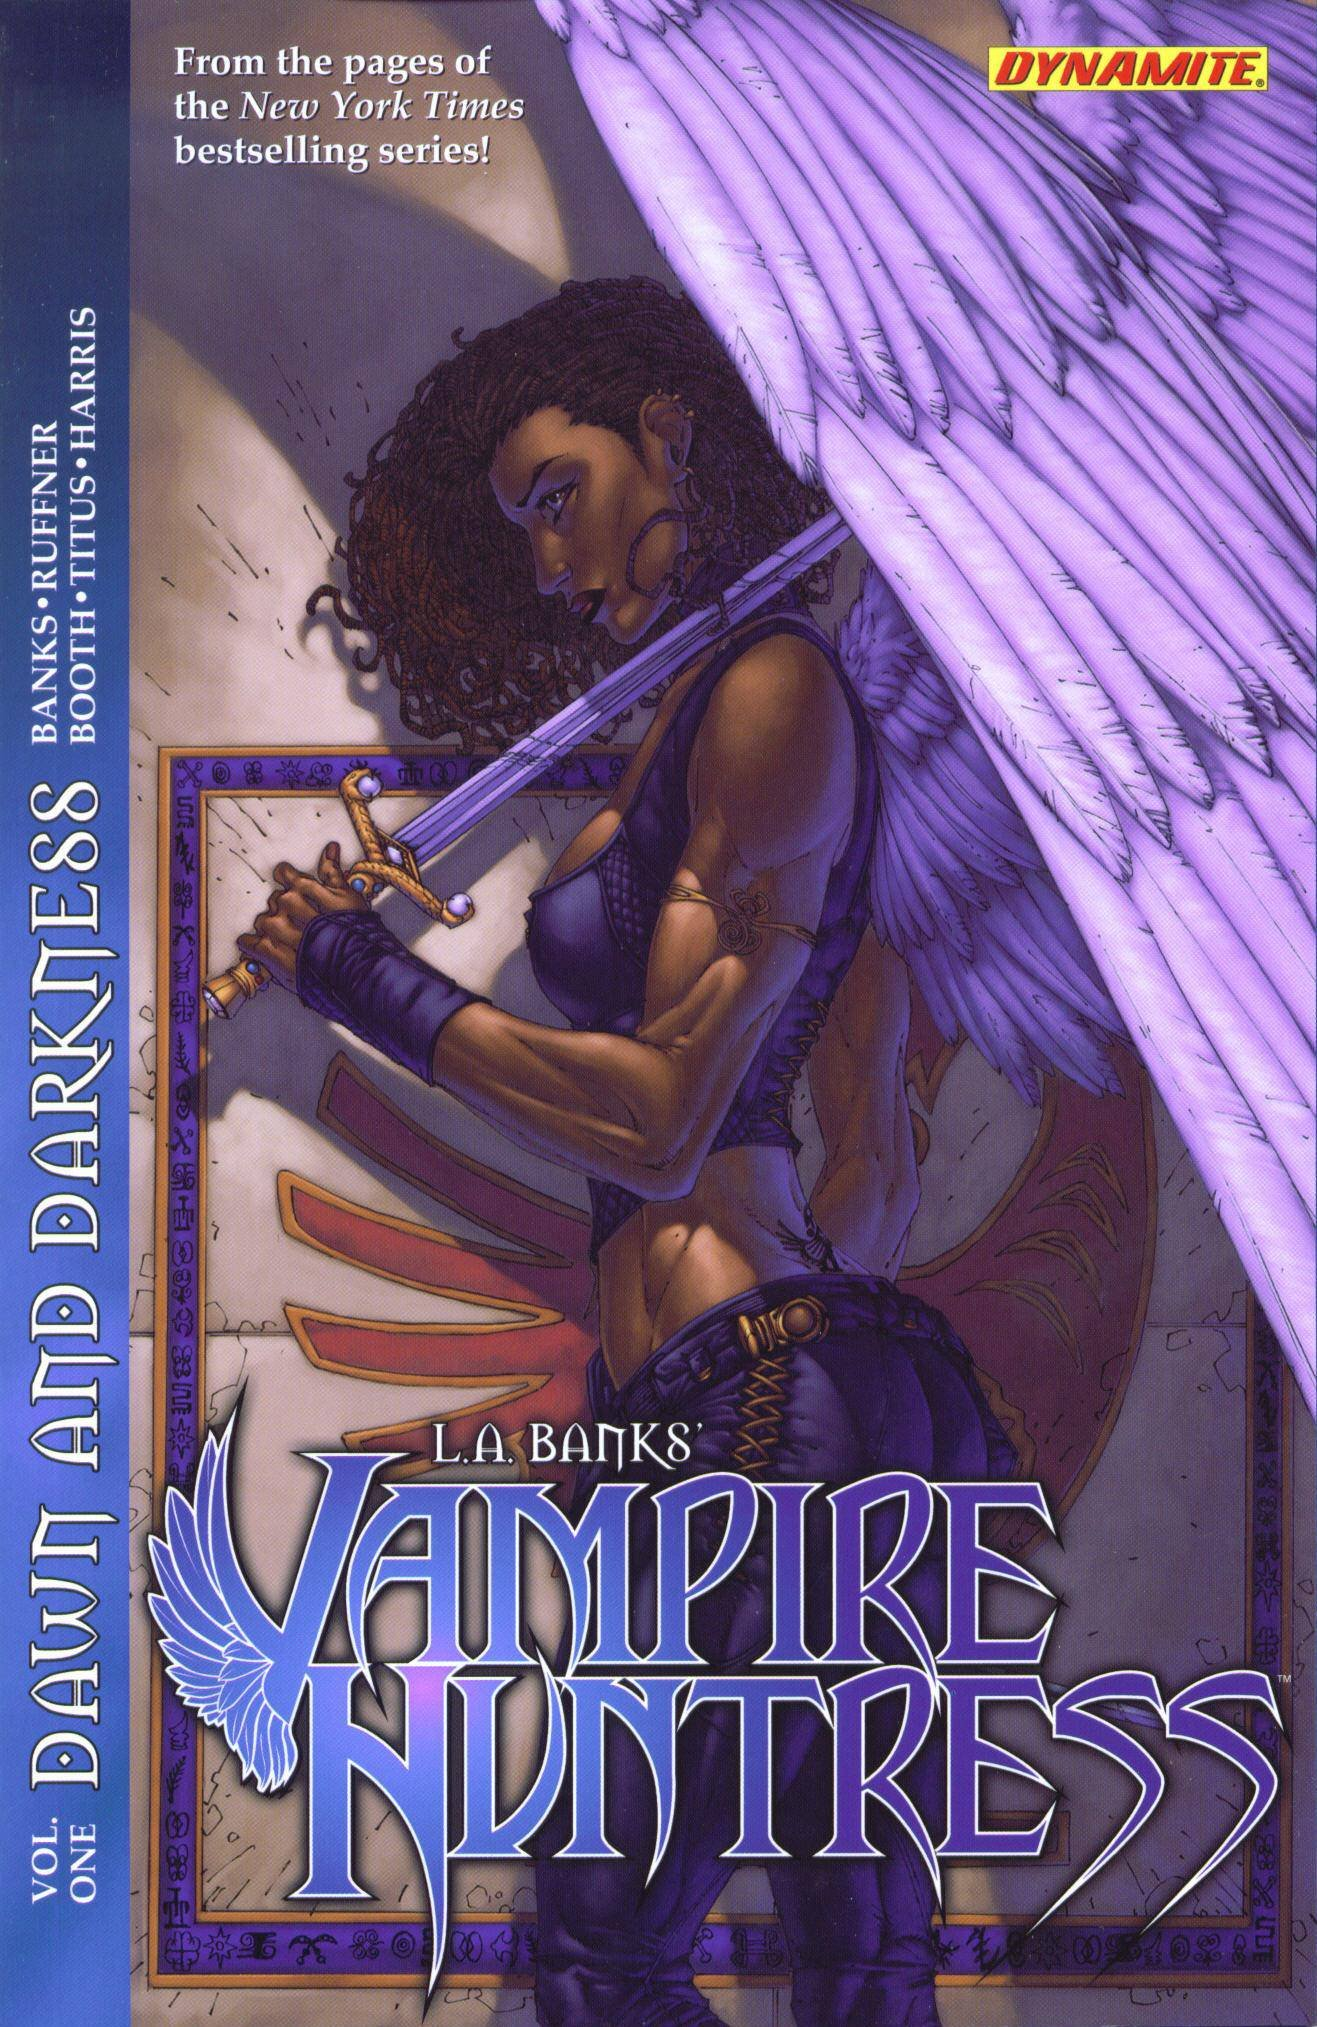 Download LA Banks' Vampire Huntress: Dawn and Darkness PDF